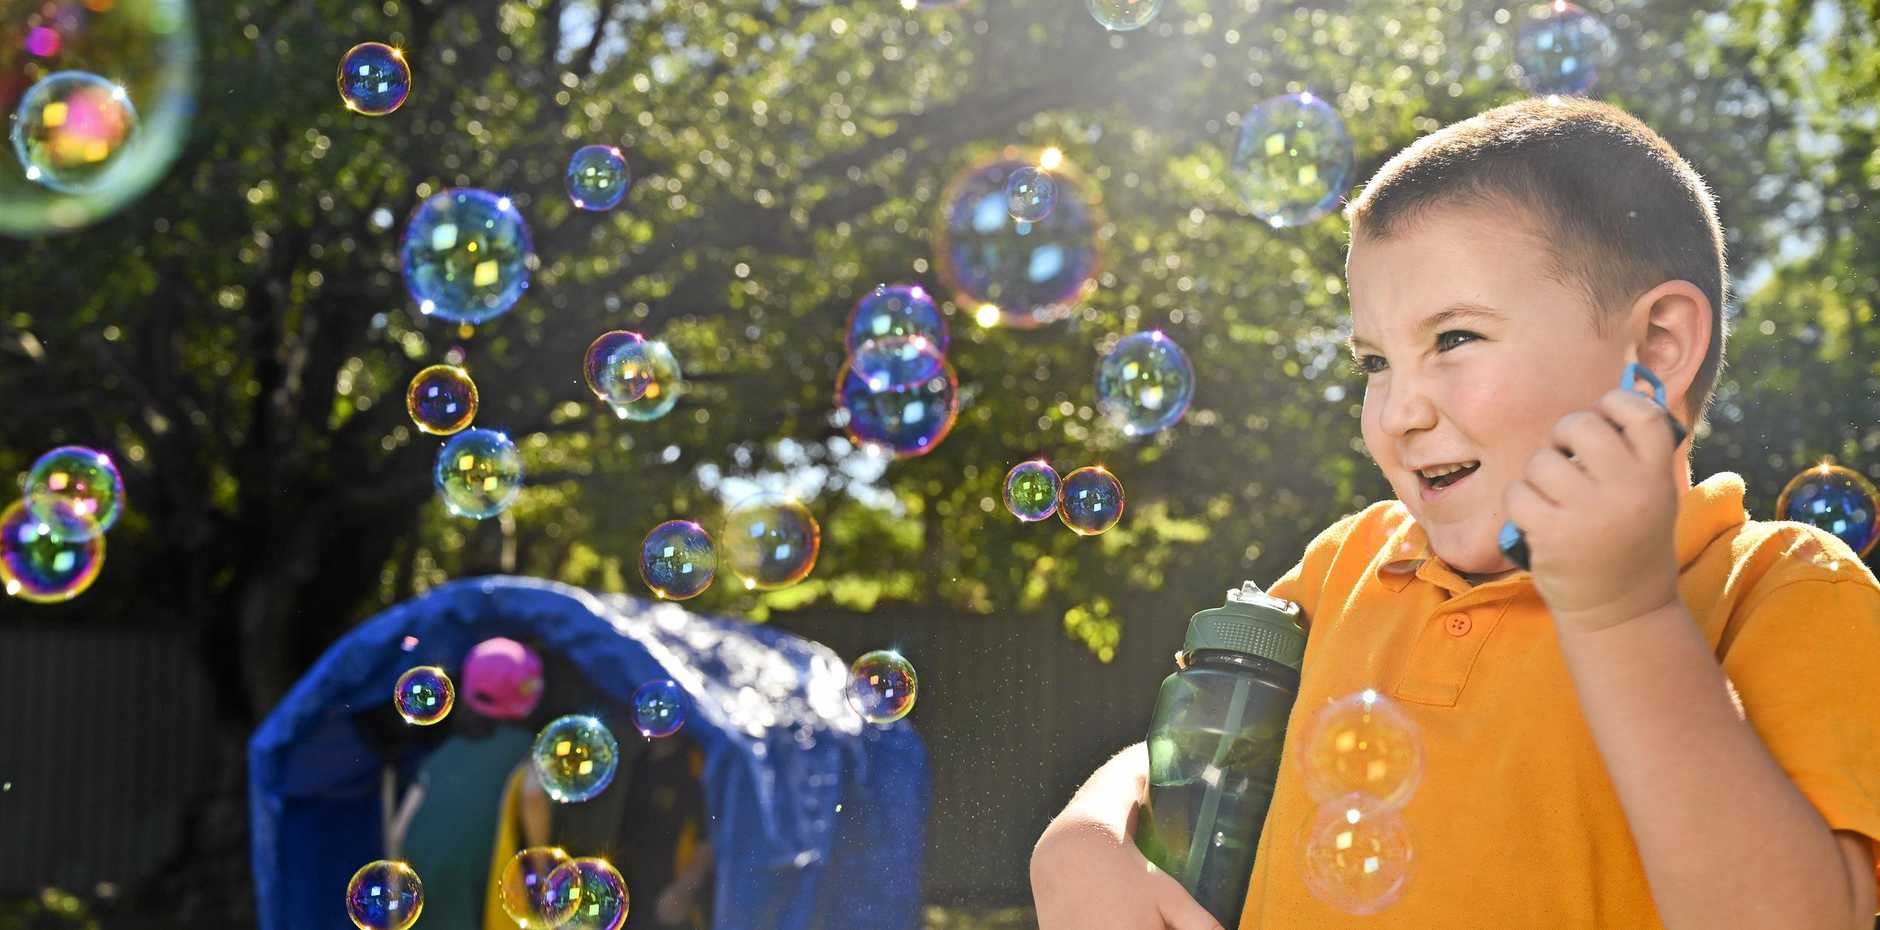 Jake Carter, 5, of Ipswich Special School plays with bubbles at an U8's day for pupils from special schools across Ipswich.